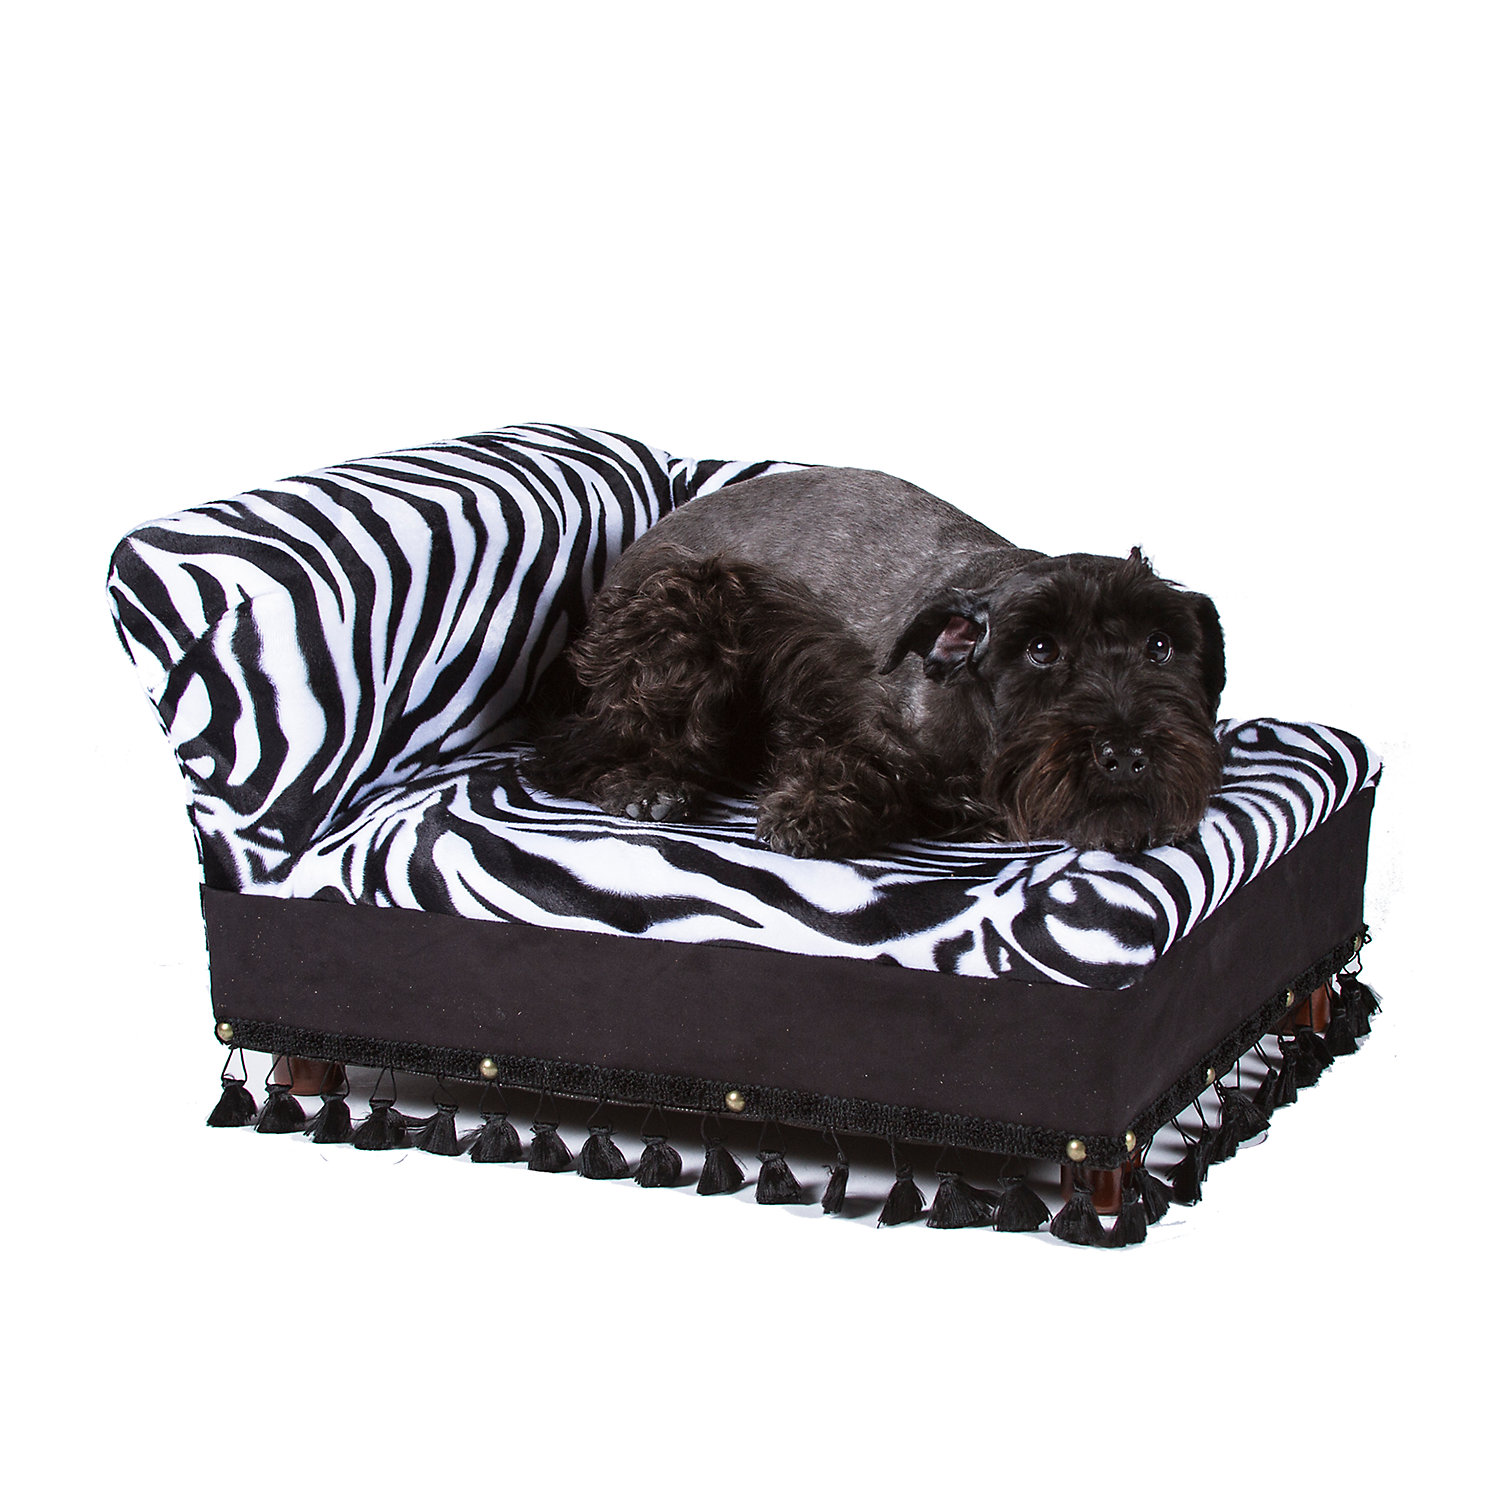 Pet Bed Upcitemdb Upc 878032000530 Product Image For Fantasy Furniture Cleopatra Chaise Zebra Stripe Small